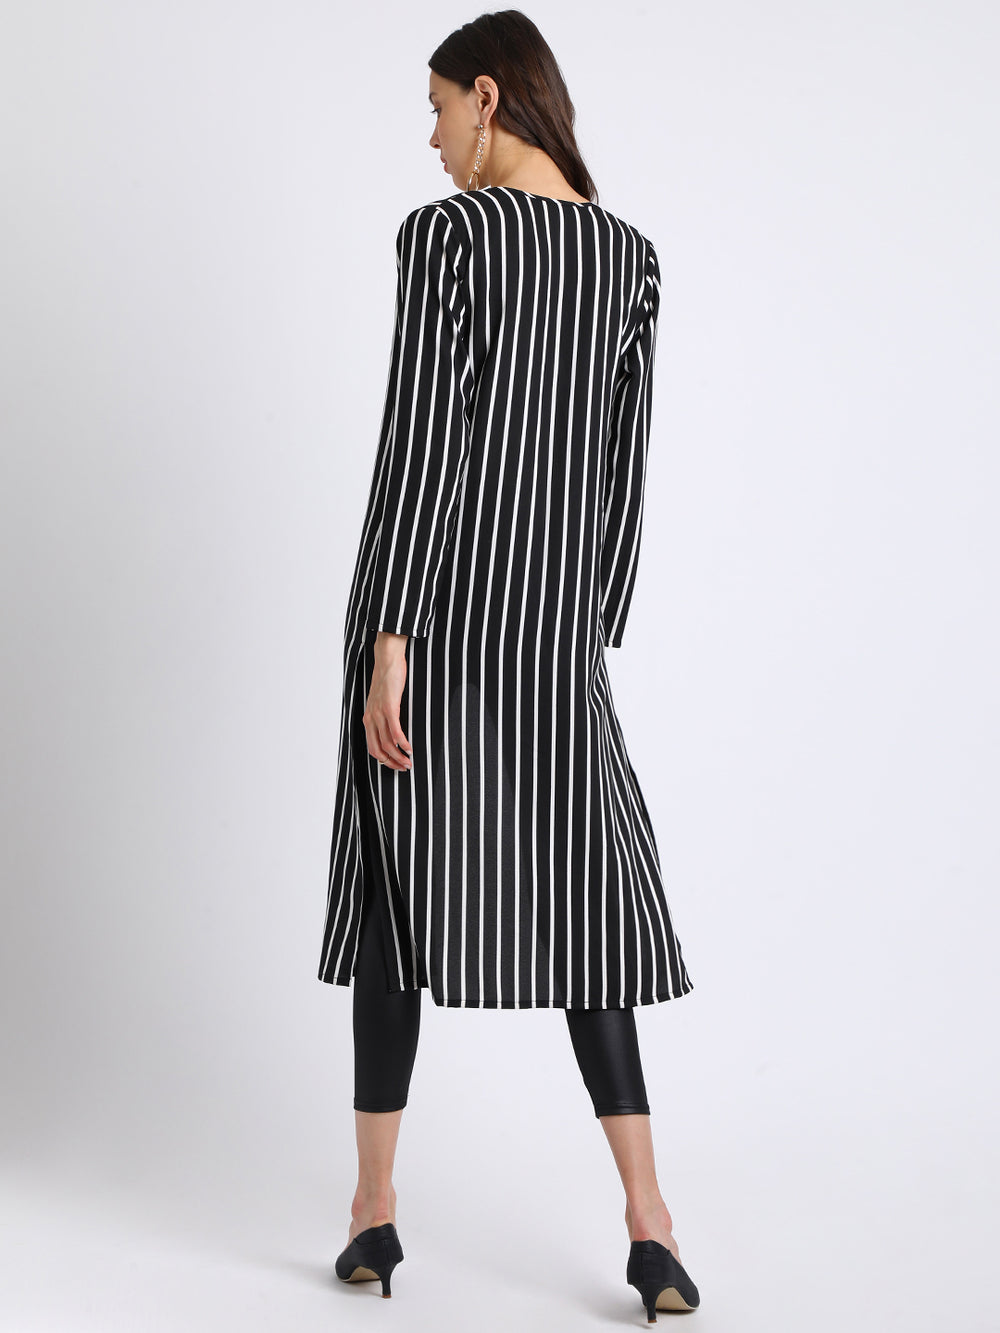 Besiva Black Striped Open Front Shrug